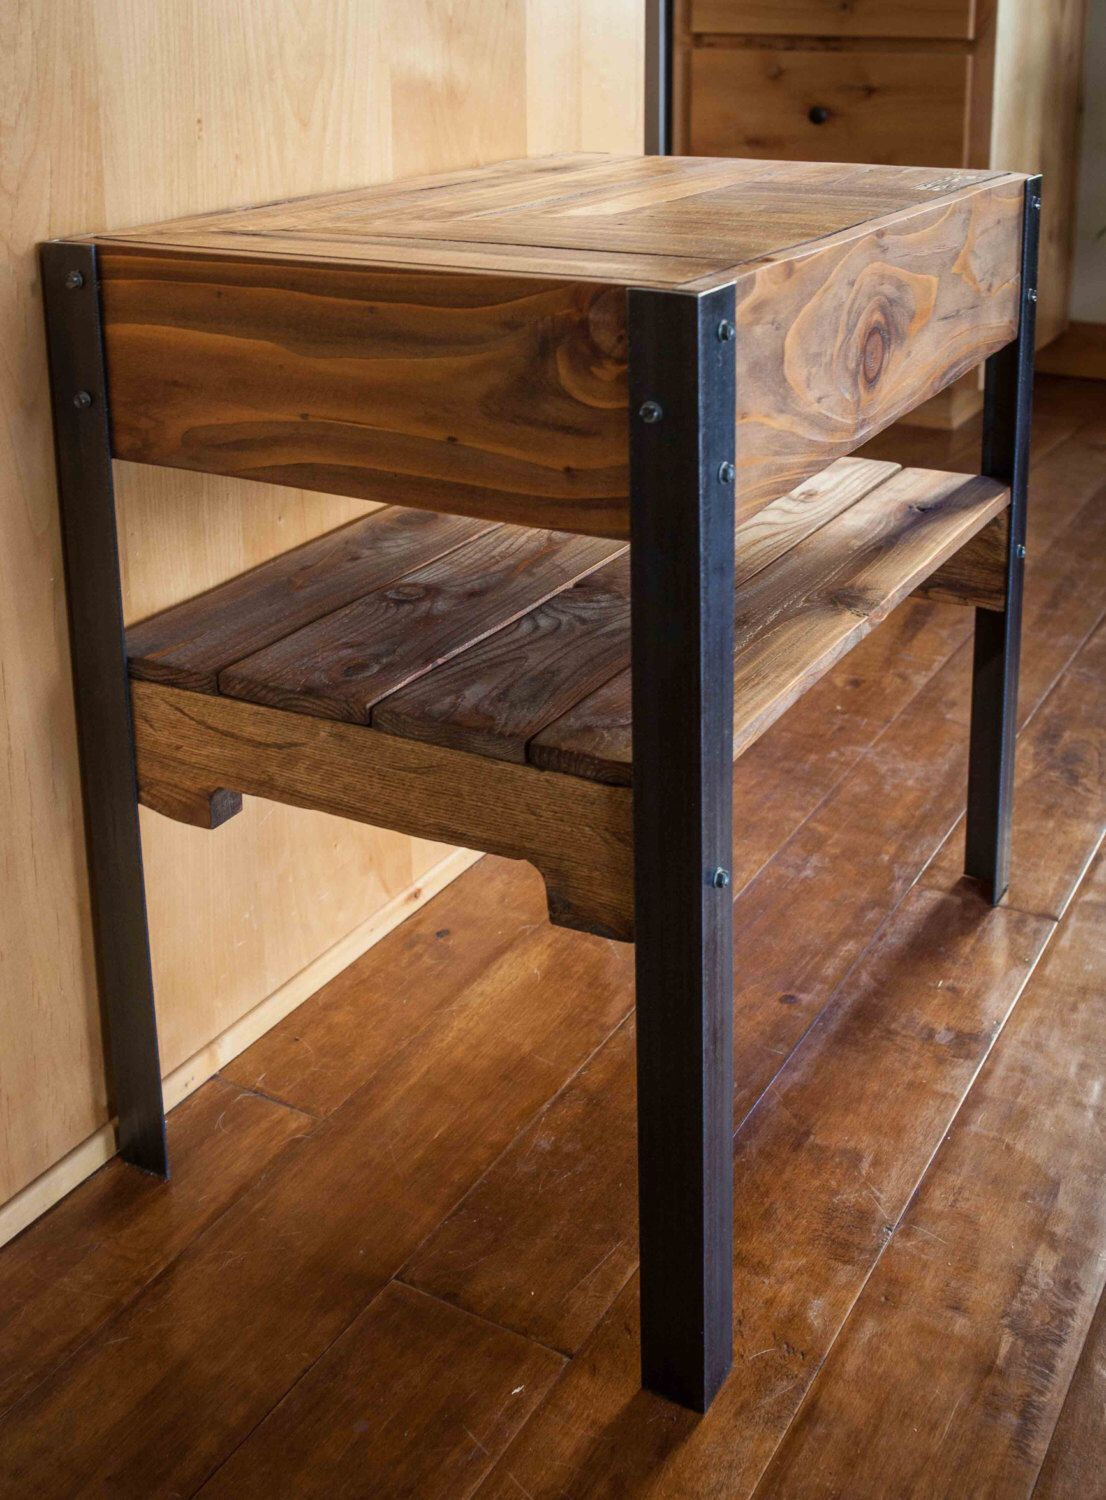 Pallet Wood Side Table with Wooden Shelf by kensimms on Etsy